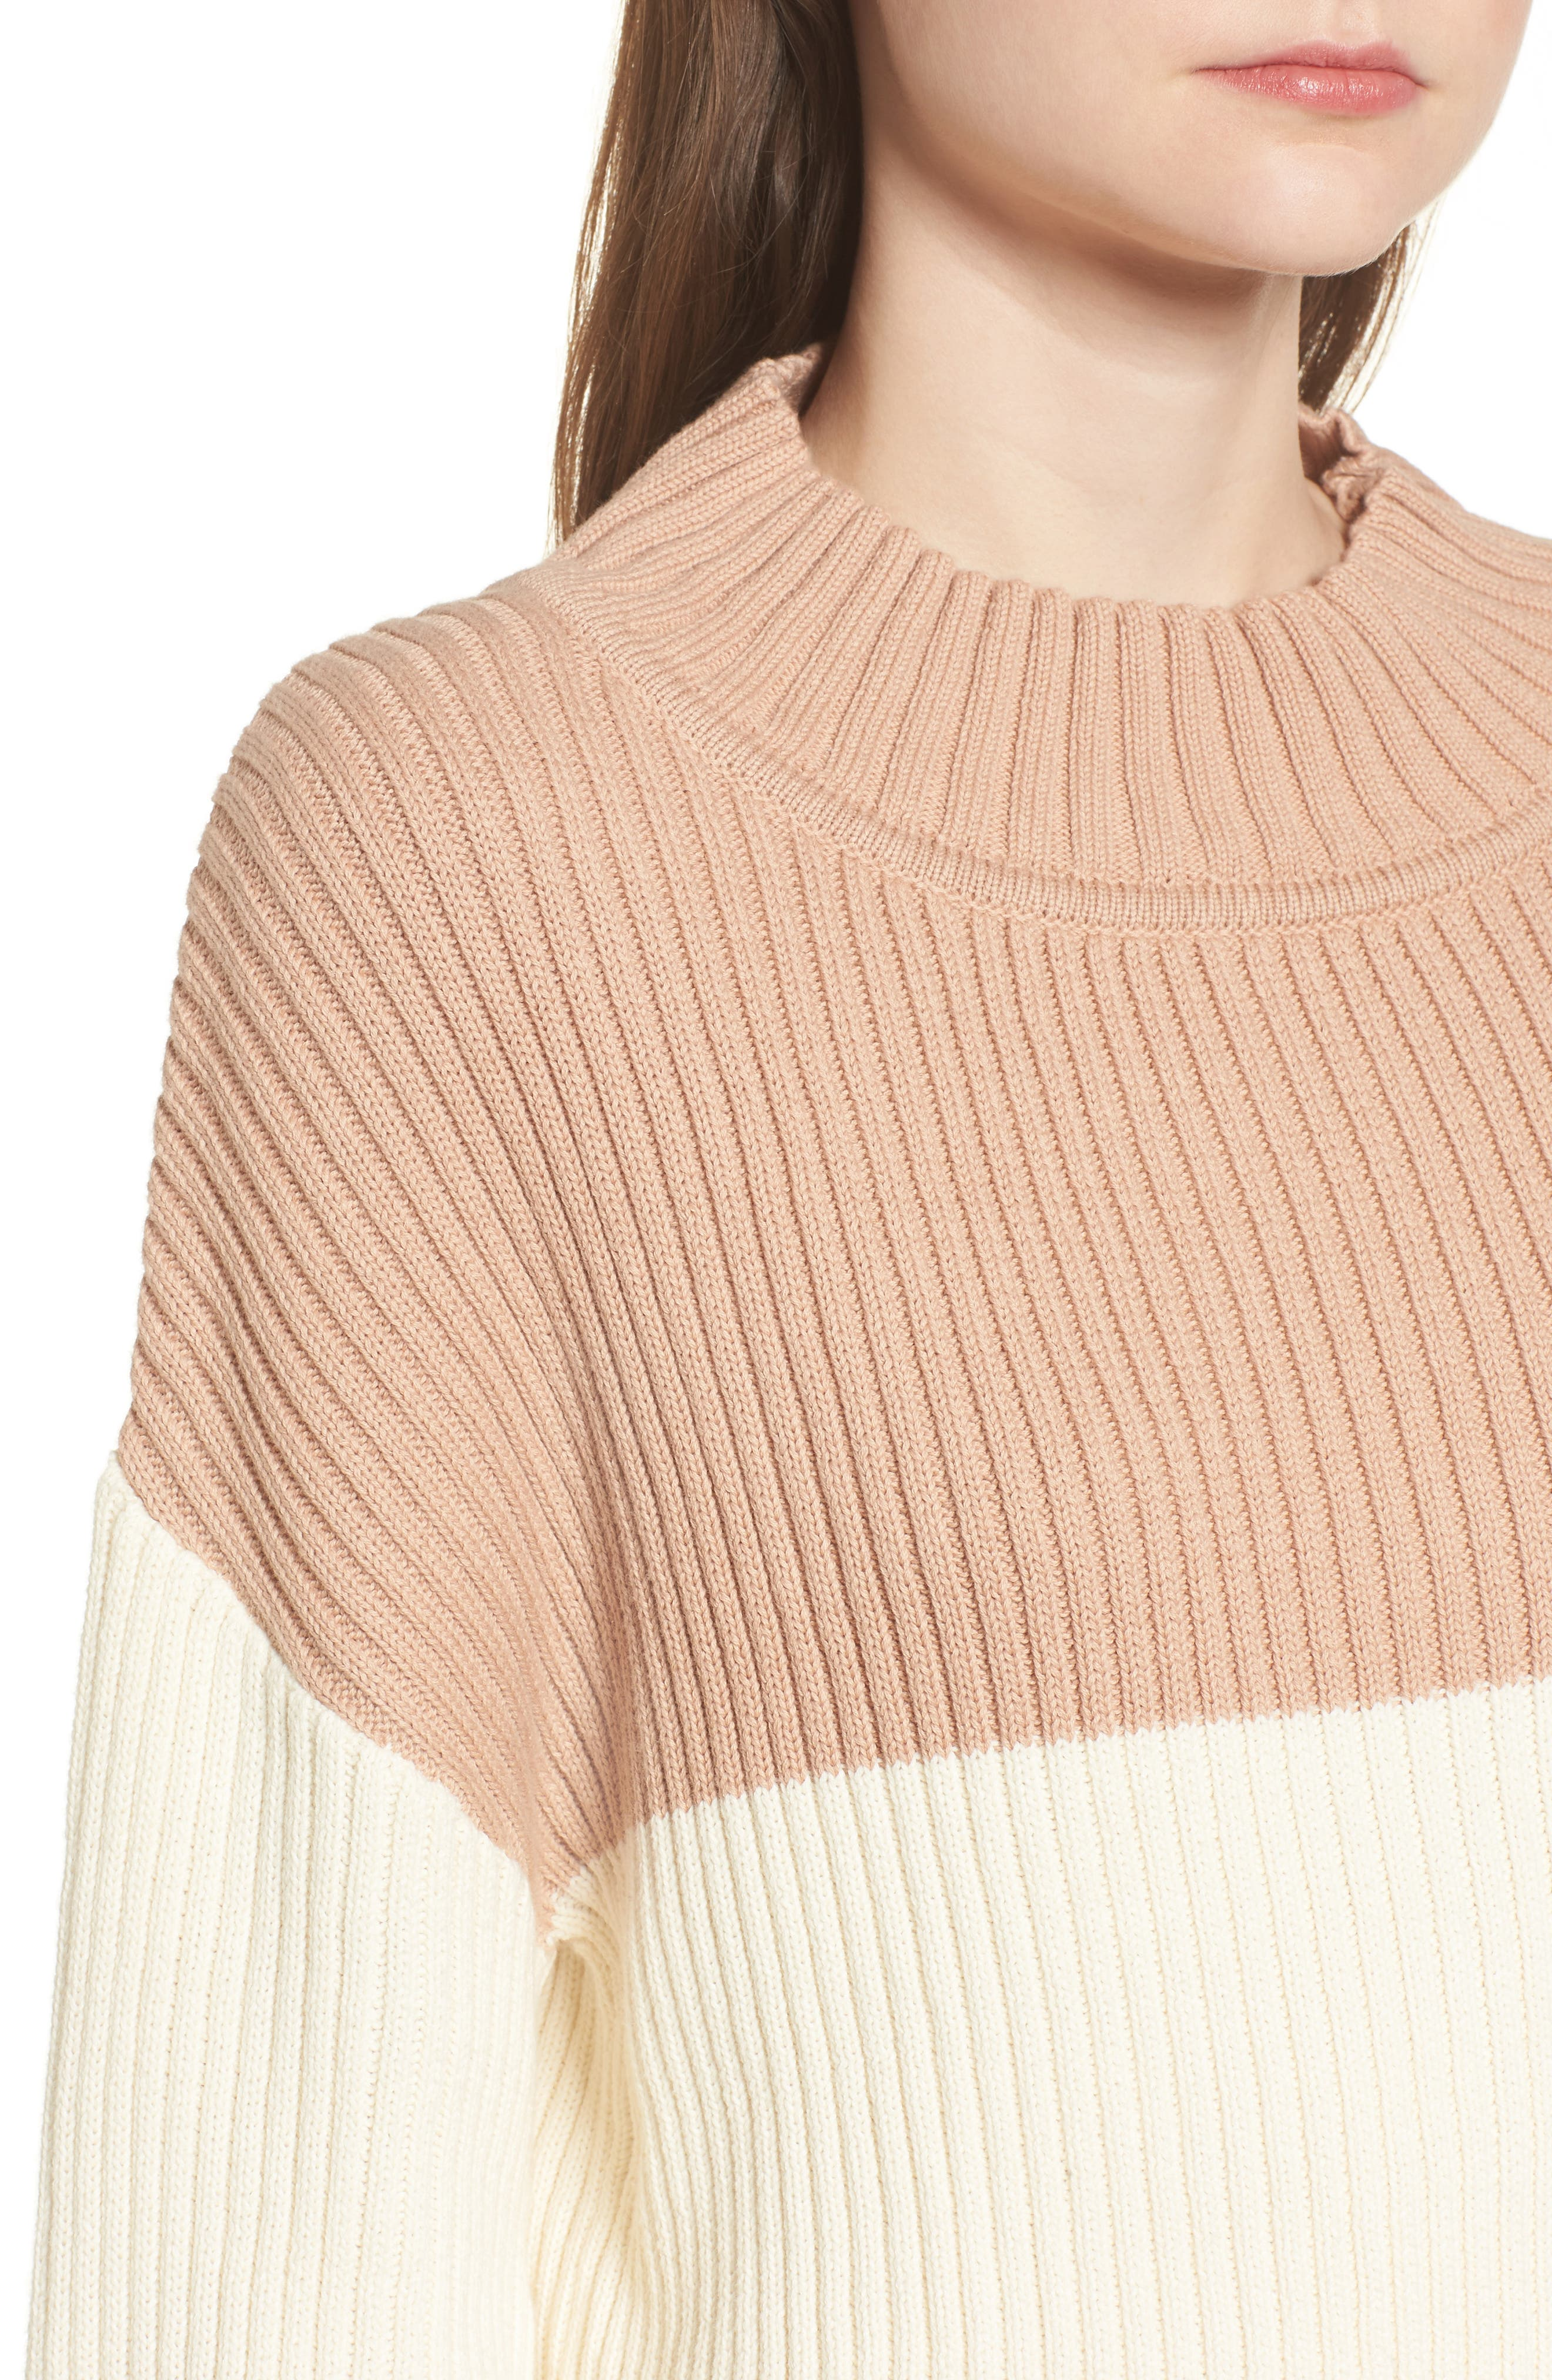 Like a Melody Colorblock Crop Sweater,                             Alternate thumbnail 4, color,                             Cream/ Dusty Pink